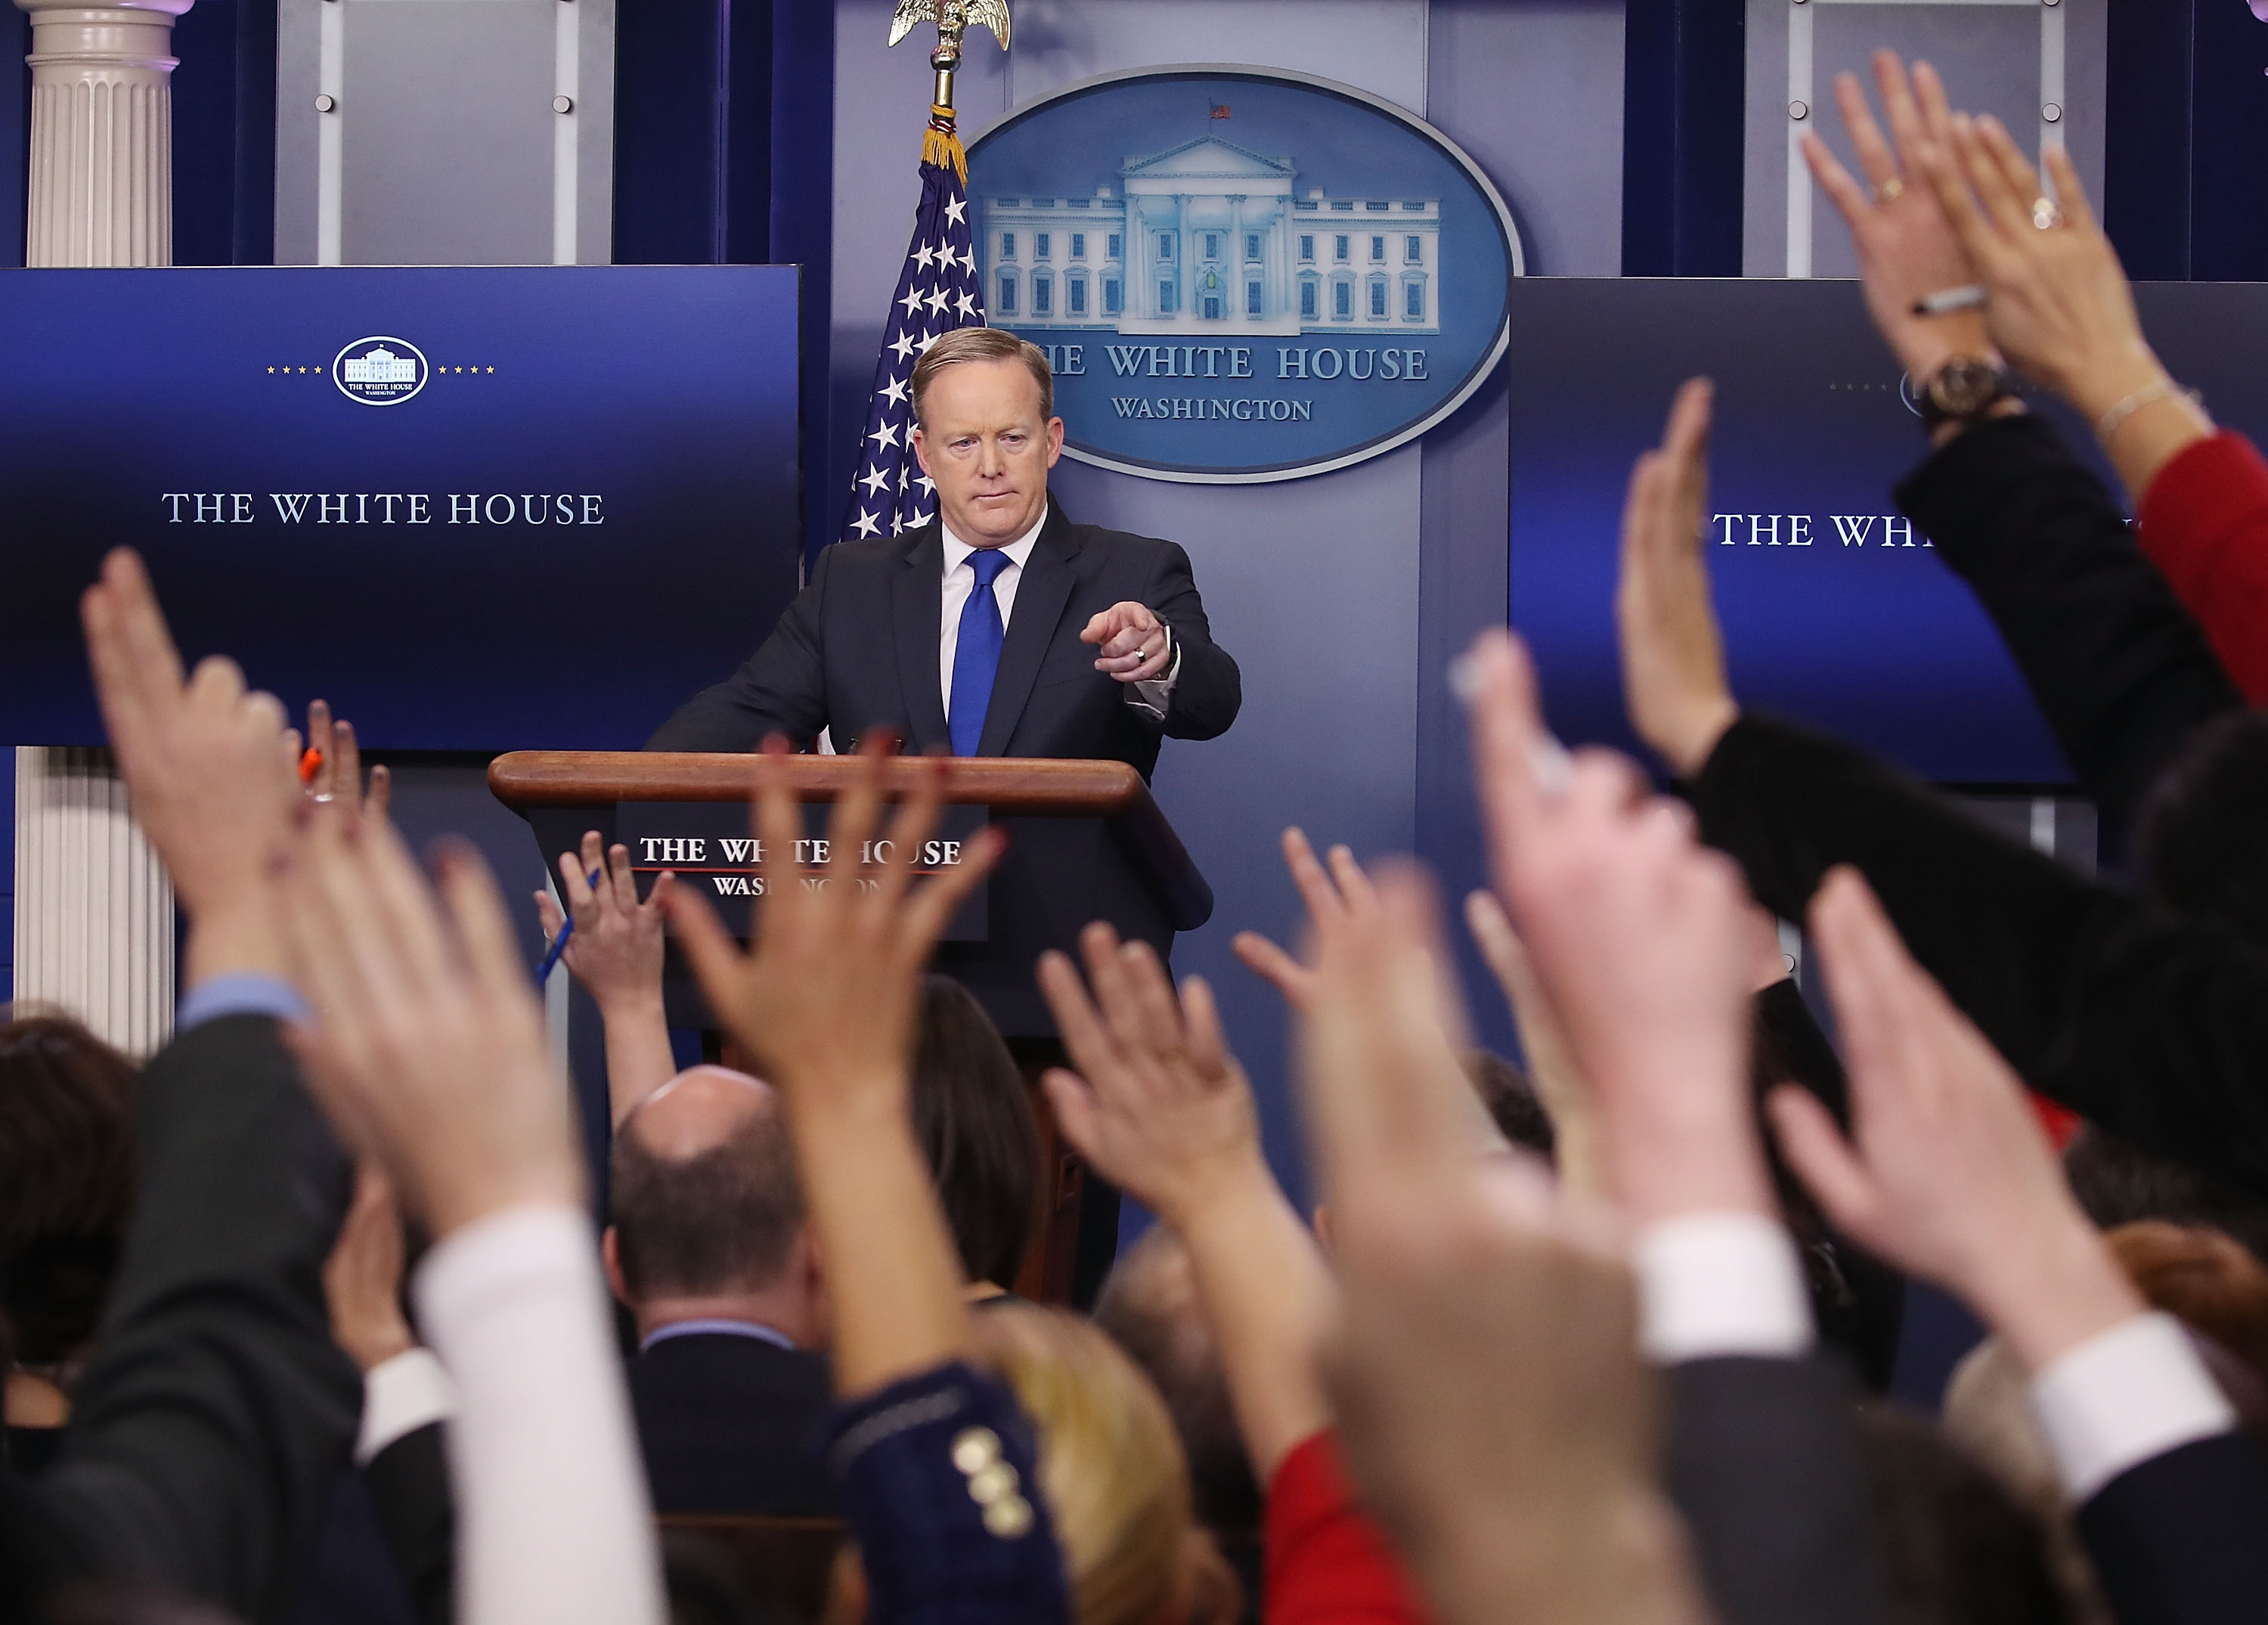 White House Press Secretary Sean Spicer takes questions from reporters in the Brady Press Briefing Room at the White House on Feb. 1, 2017.